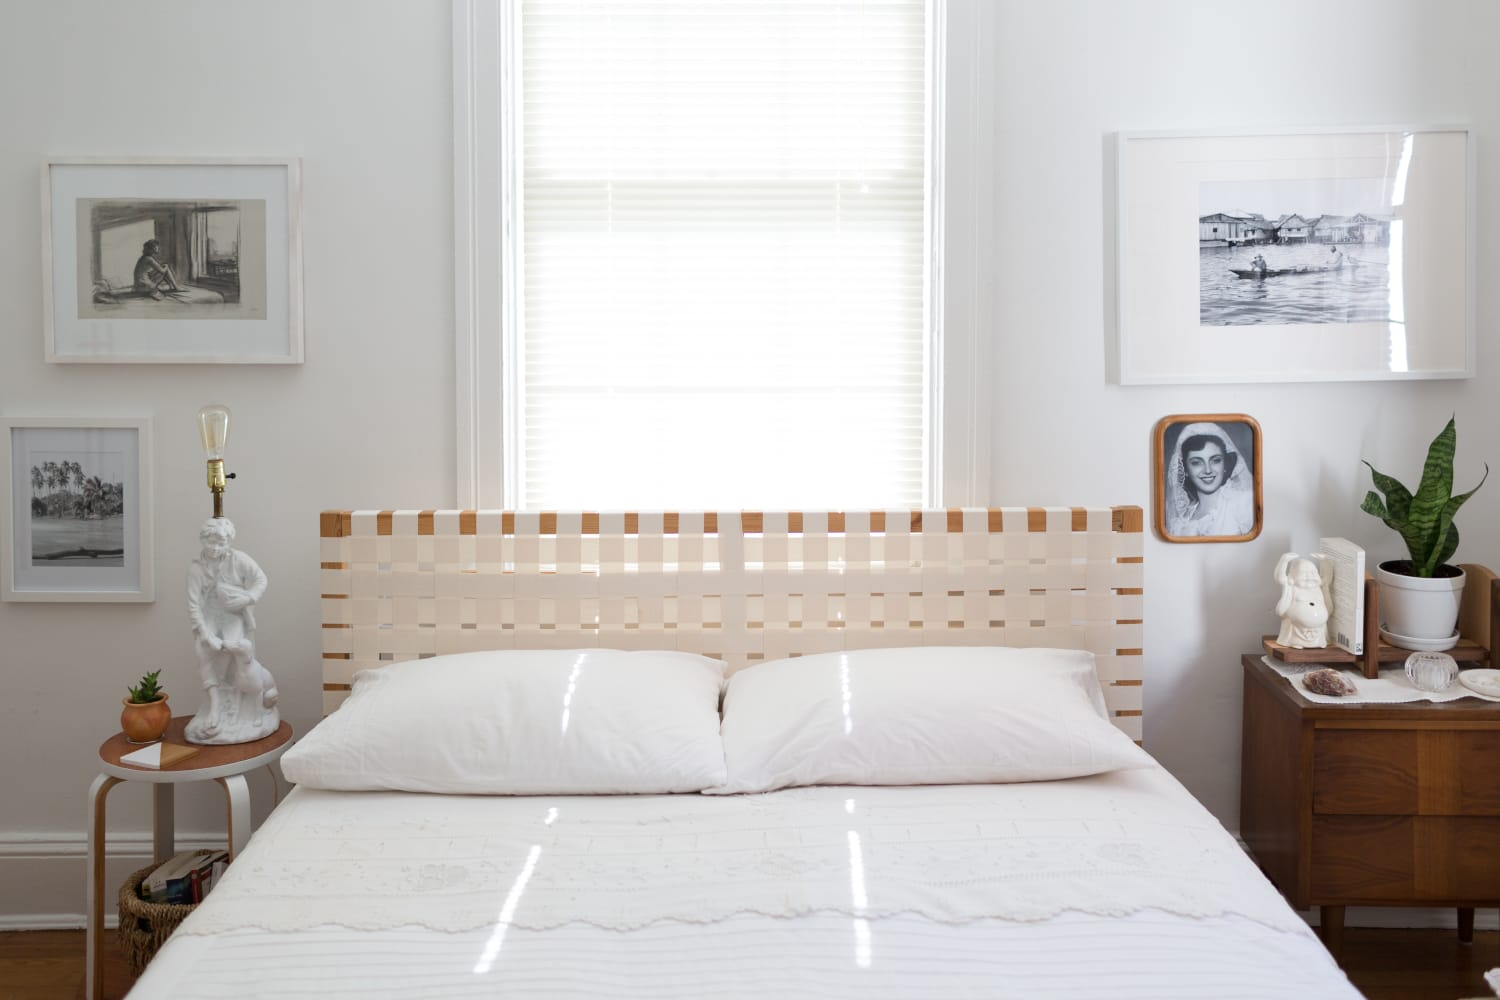 10 Clever Ikea Bed Hacks For More Style And Storage Apartment Therapy